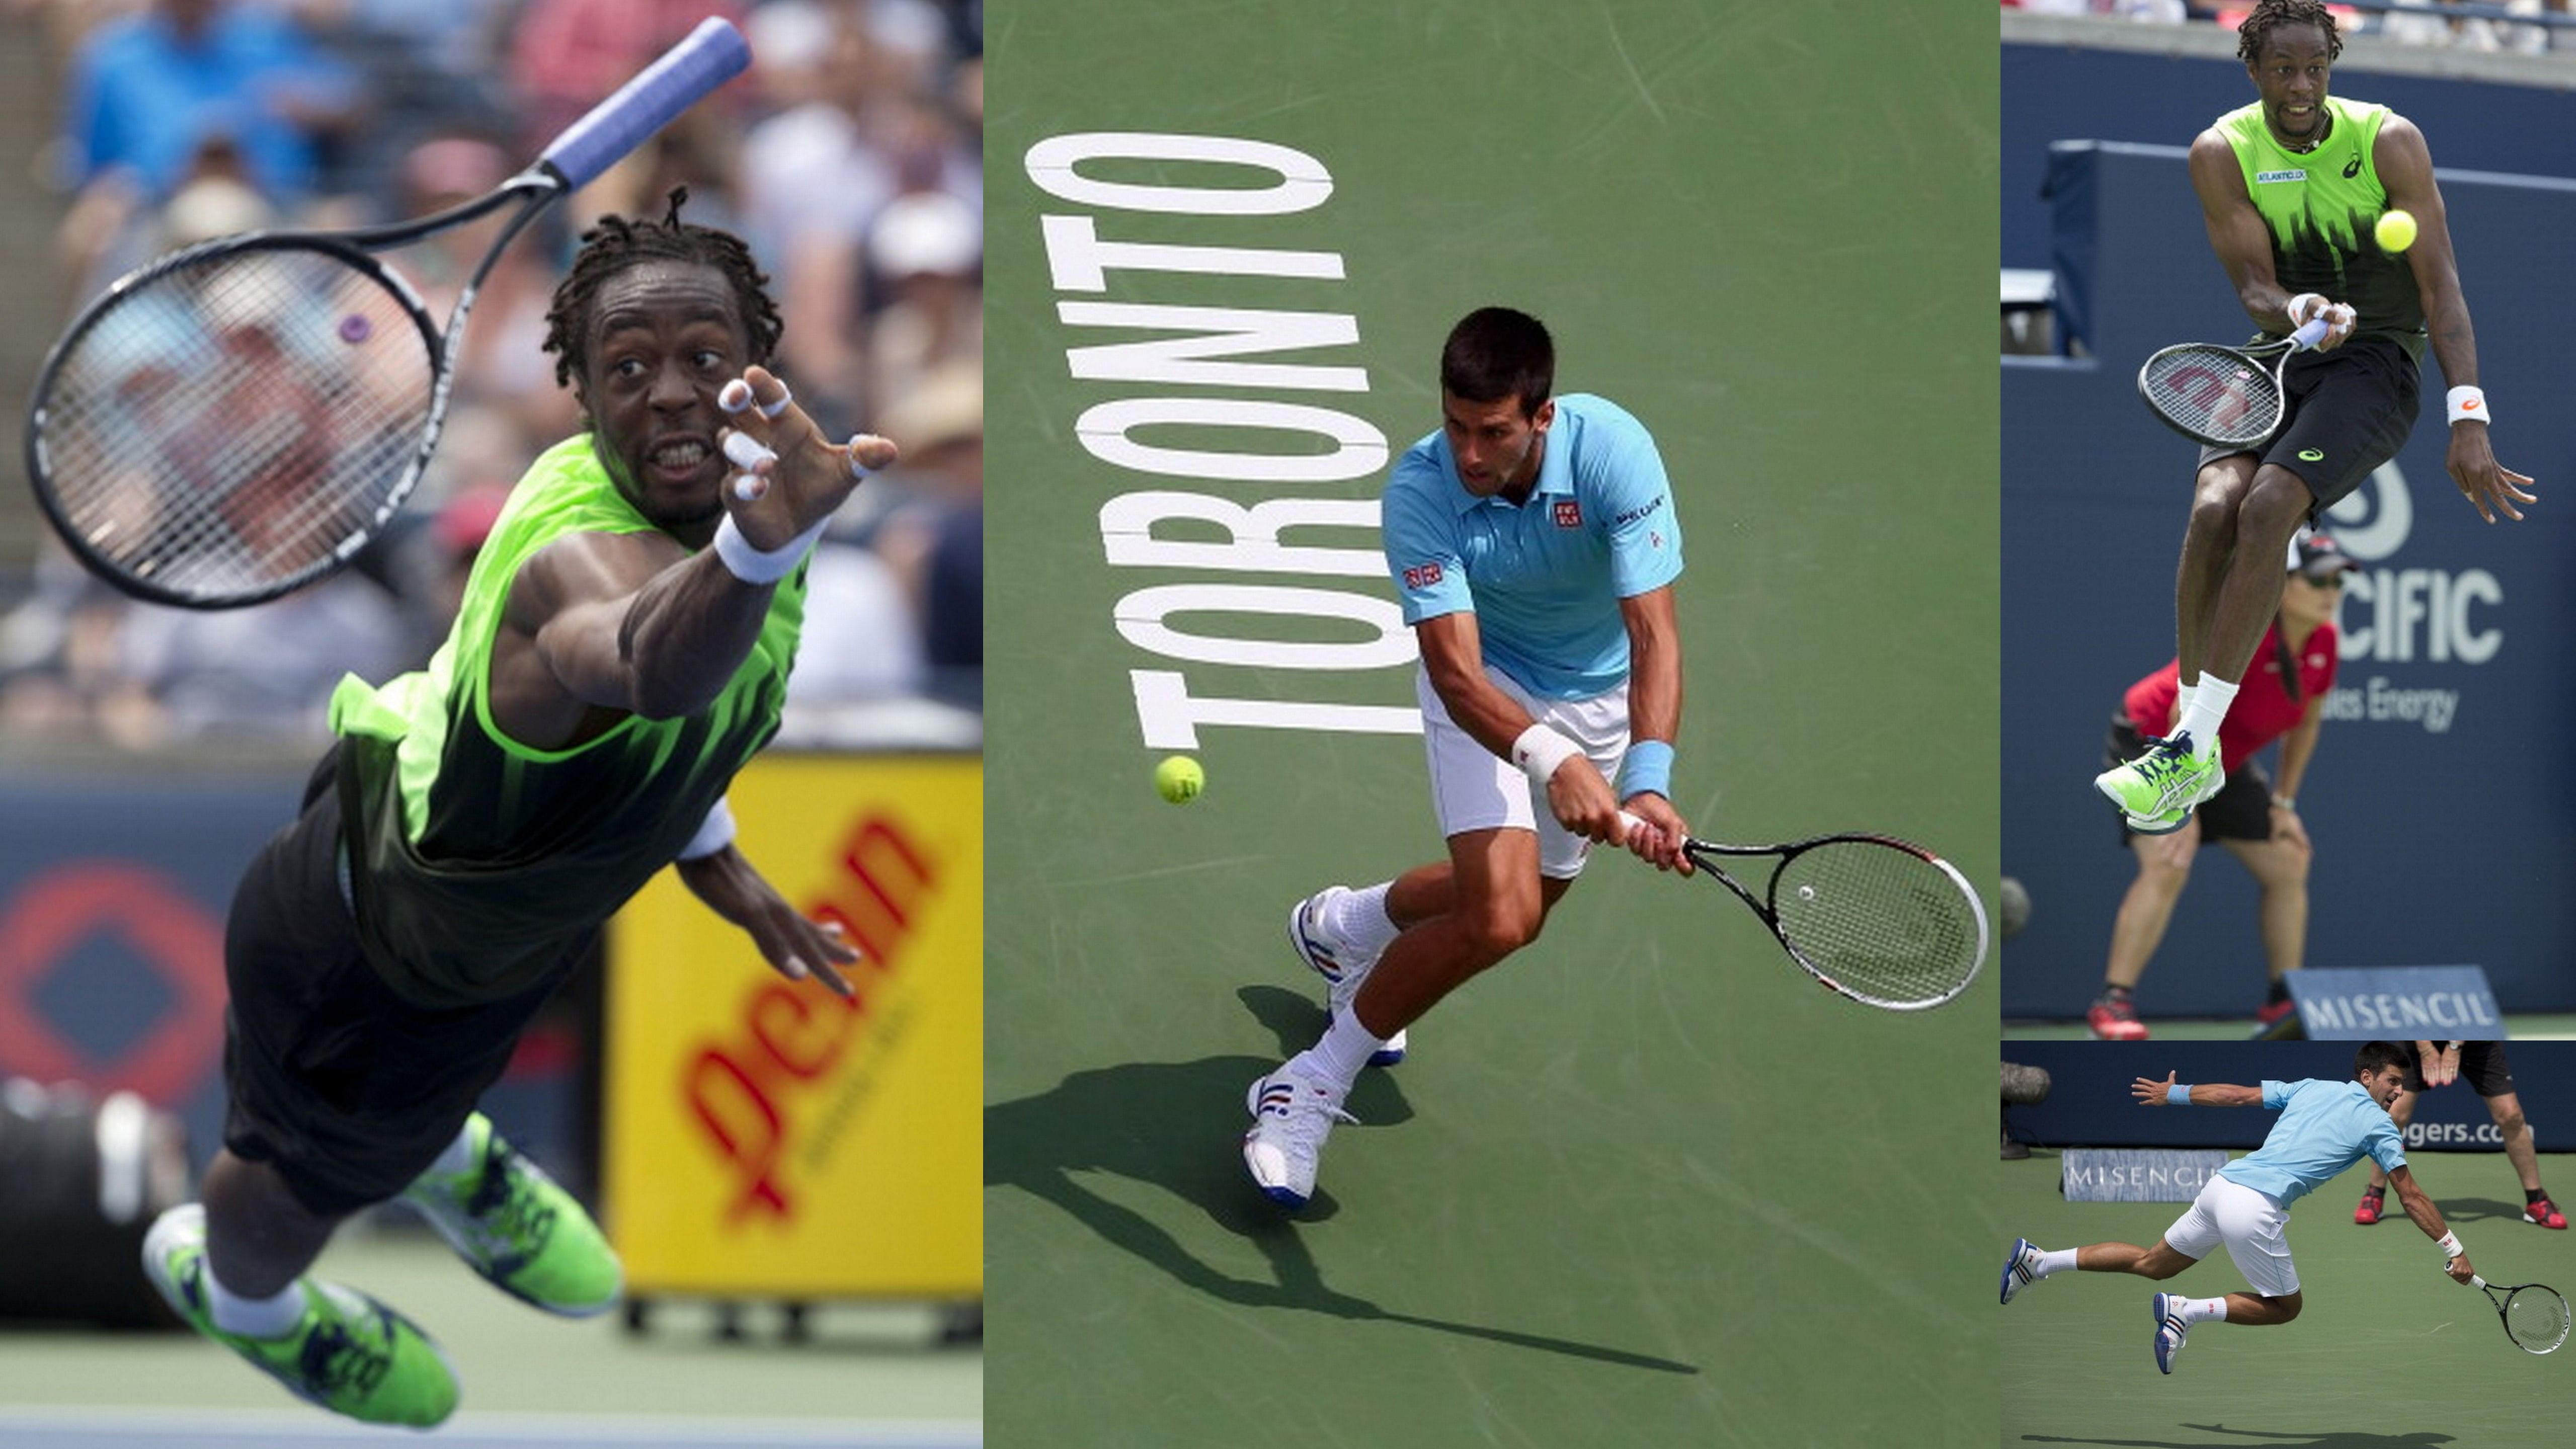 Gael Monfils and Novak Djokovic jointly create tennis magic in Toronto